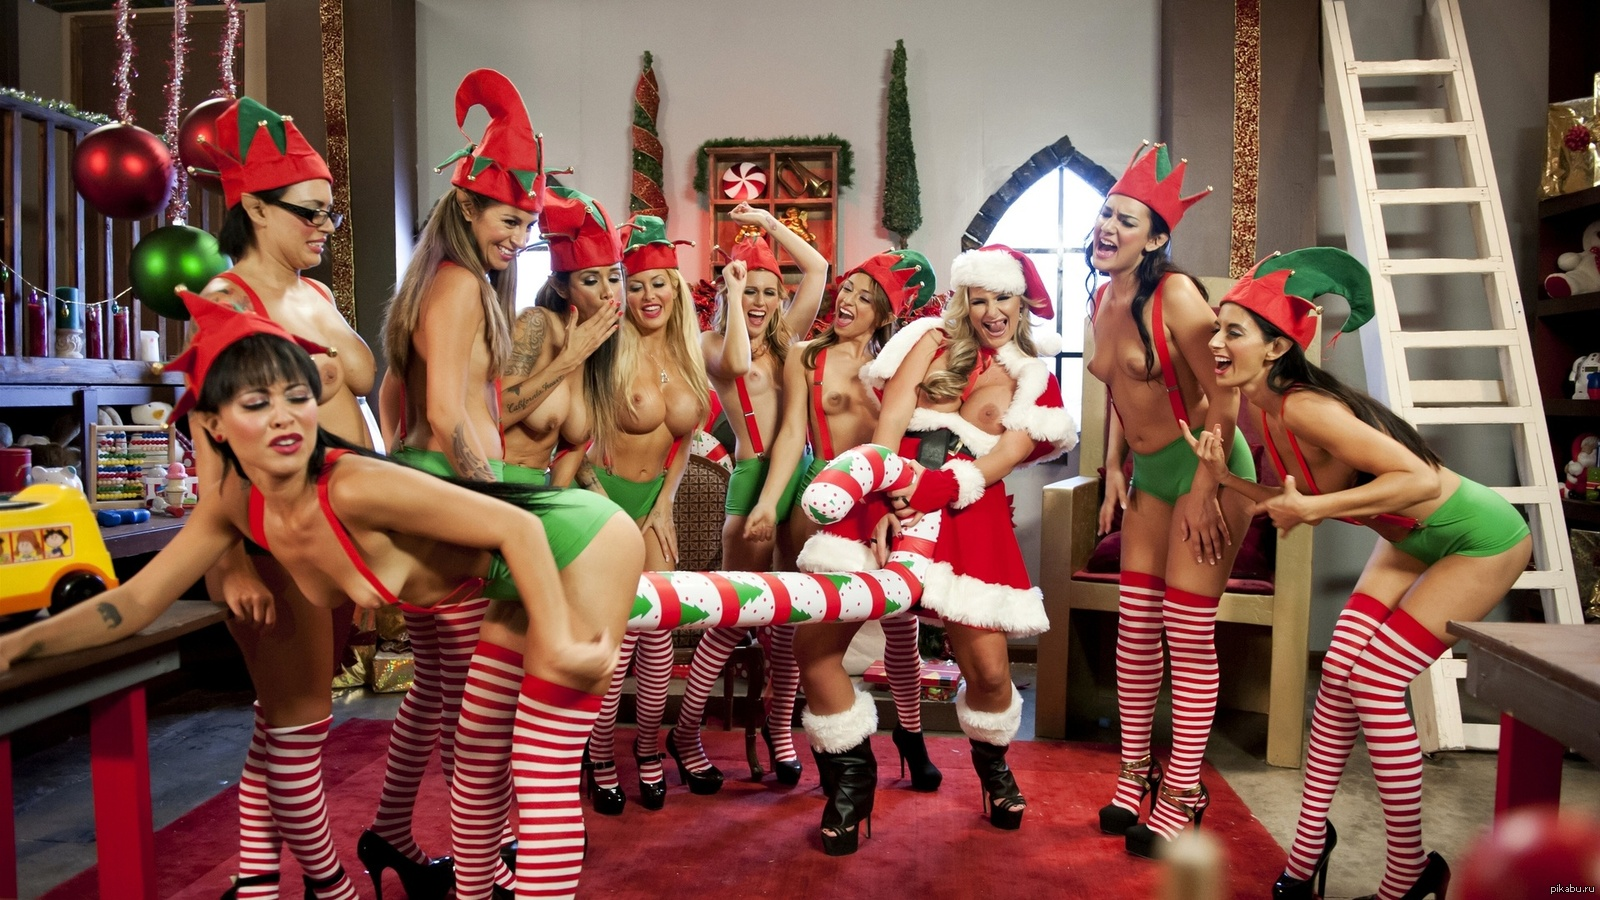 Santa and elves henita pic sex download